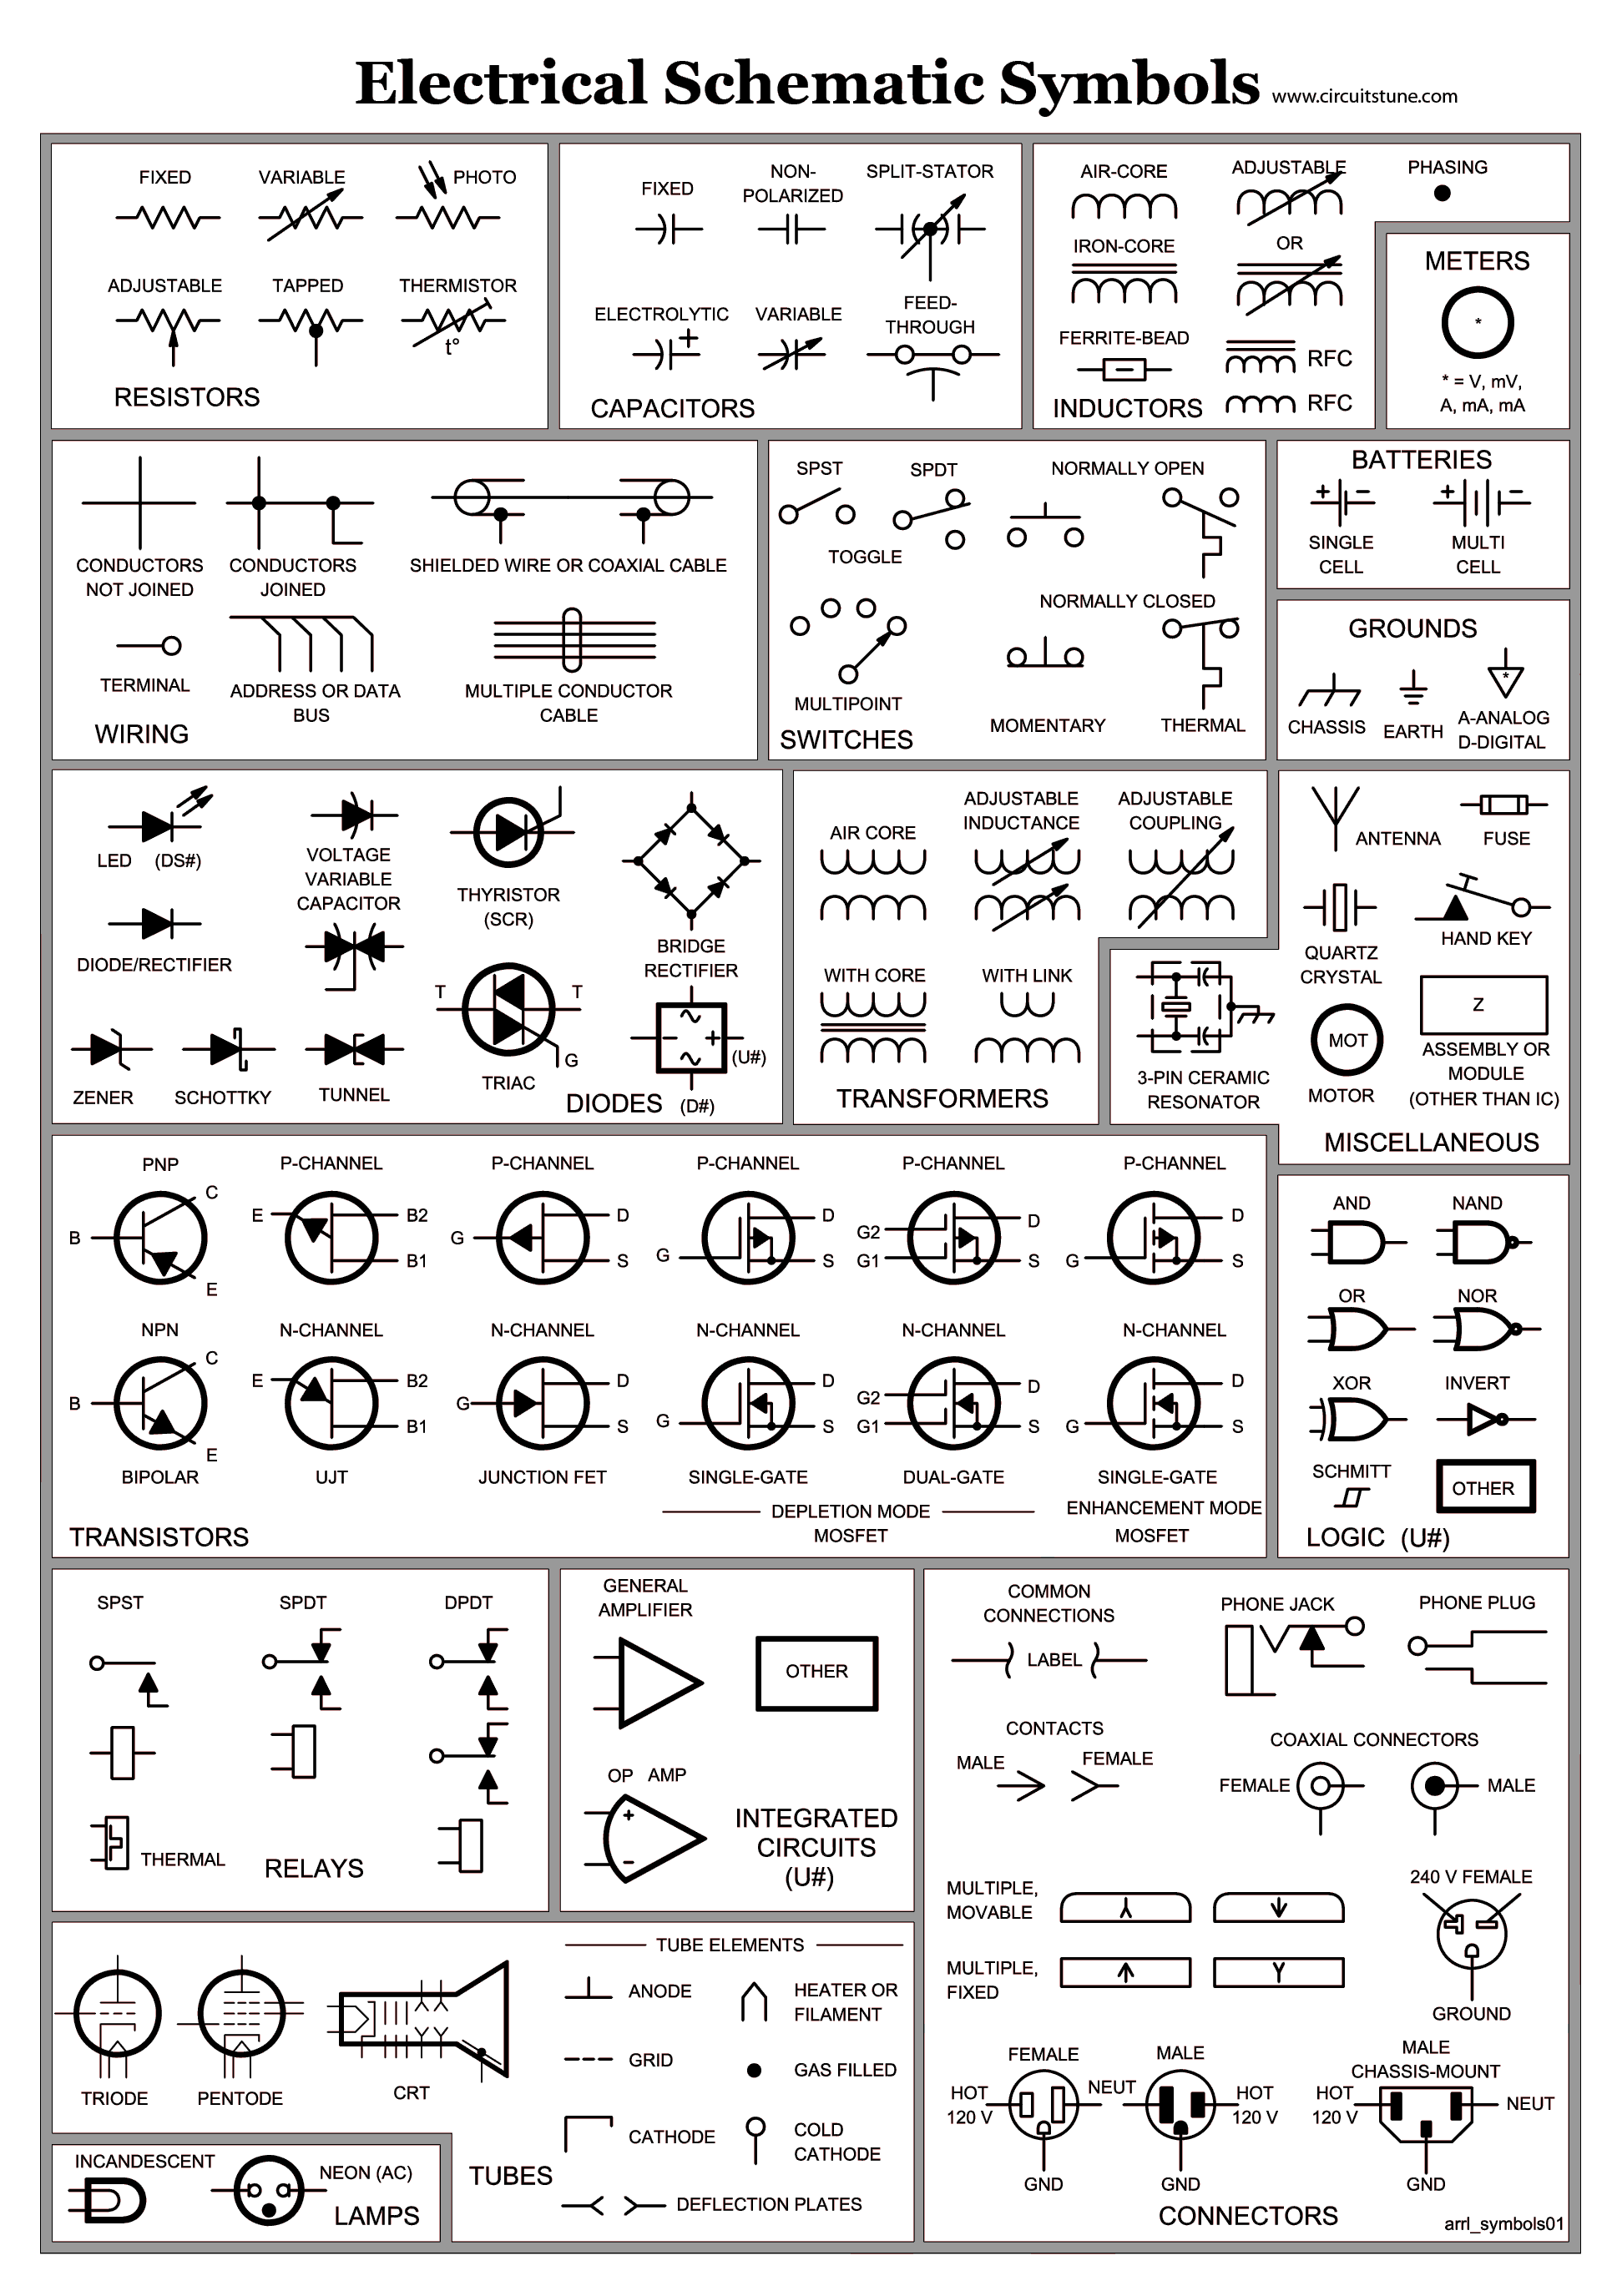 Automotive Electrical Wiring Diagrams Symbols Volvo Penta 5 7 Alternator Diagram Schematic Wire